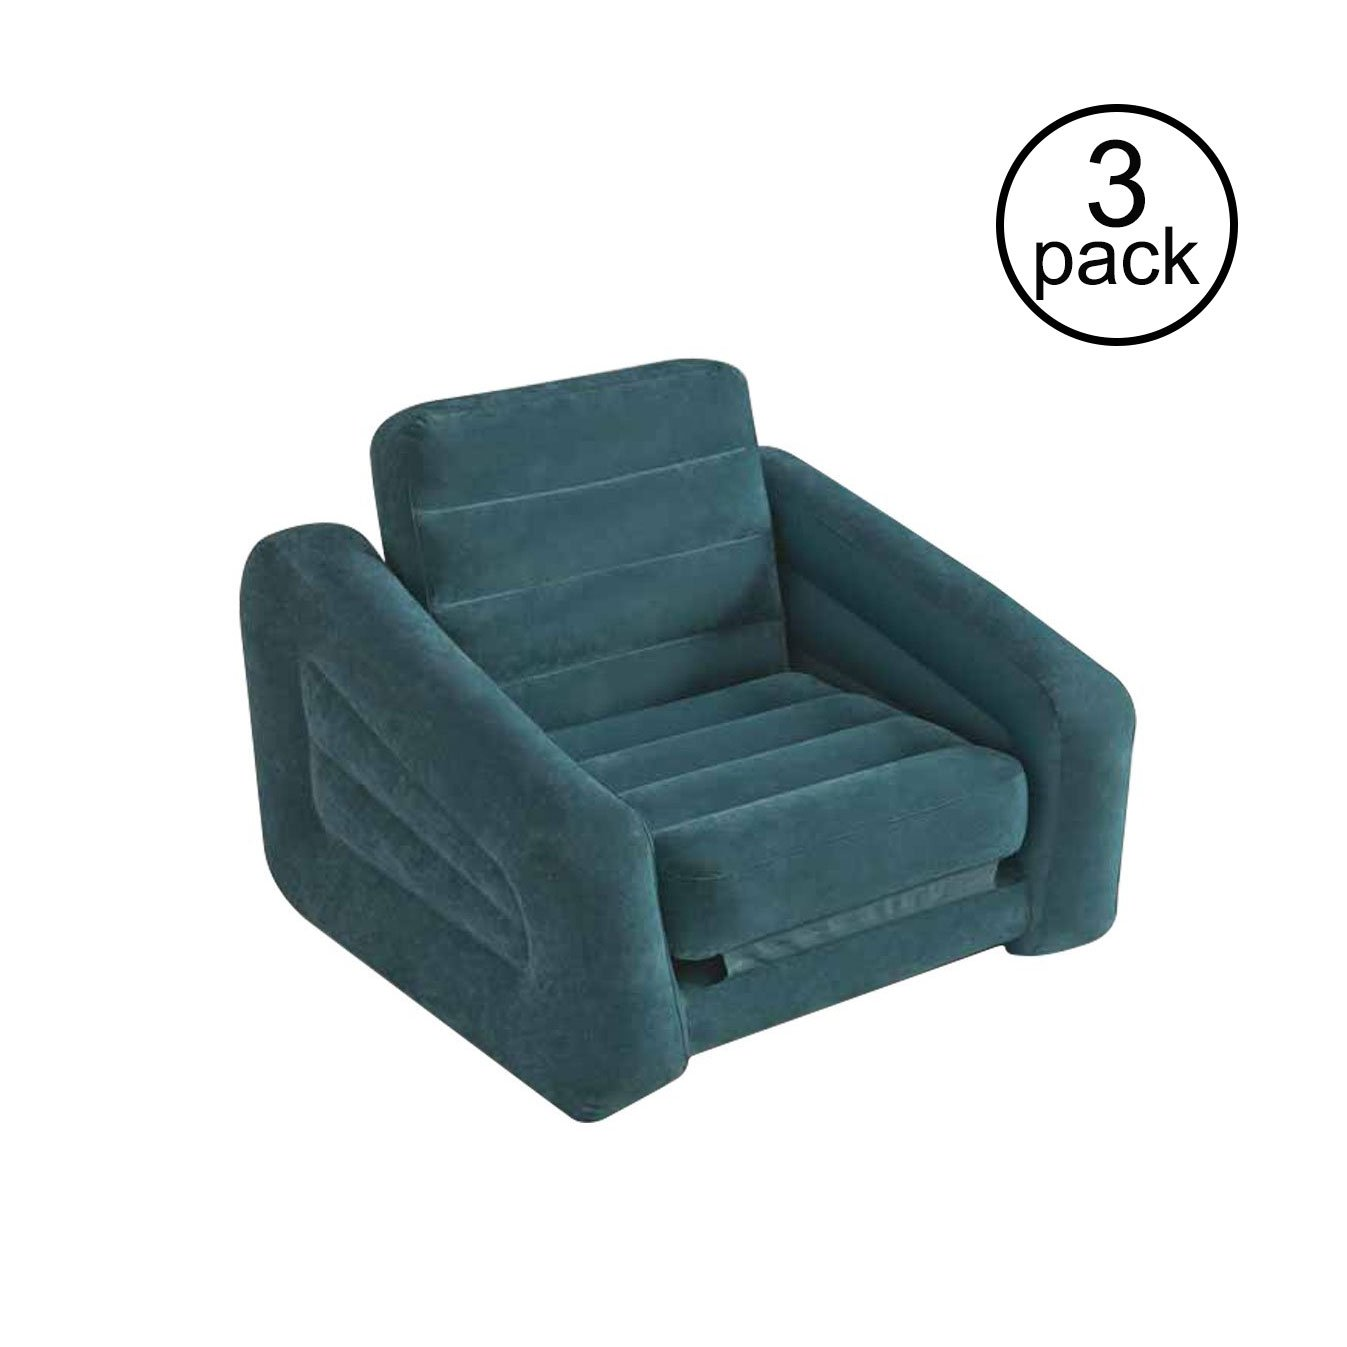 Merveilleux Intex Inflatable Pull Out Chair Seat And Twin Bed Air Mattress Sleeper (3  Pack)